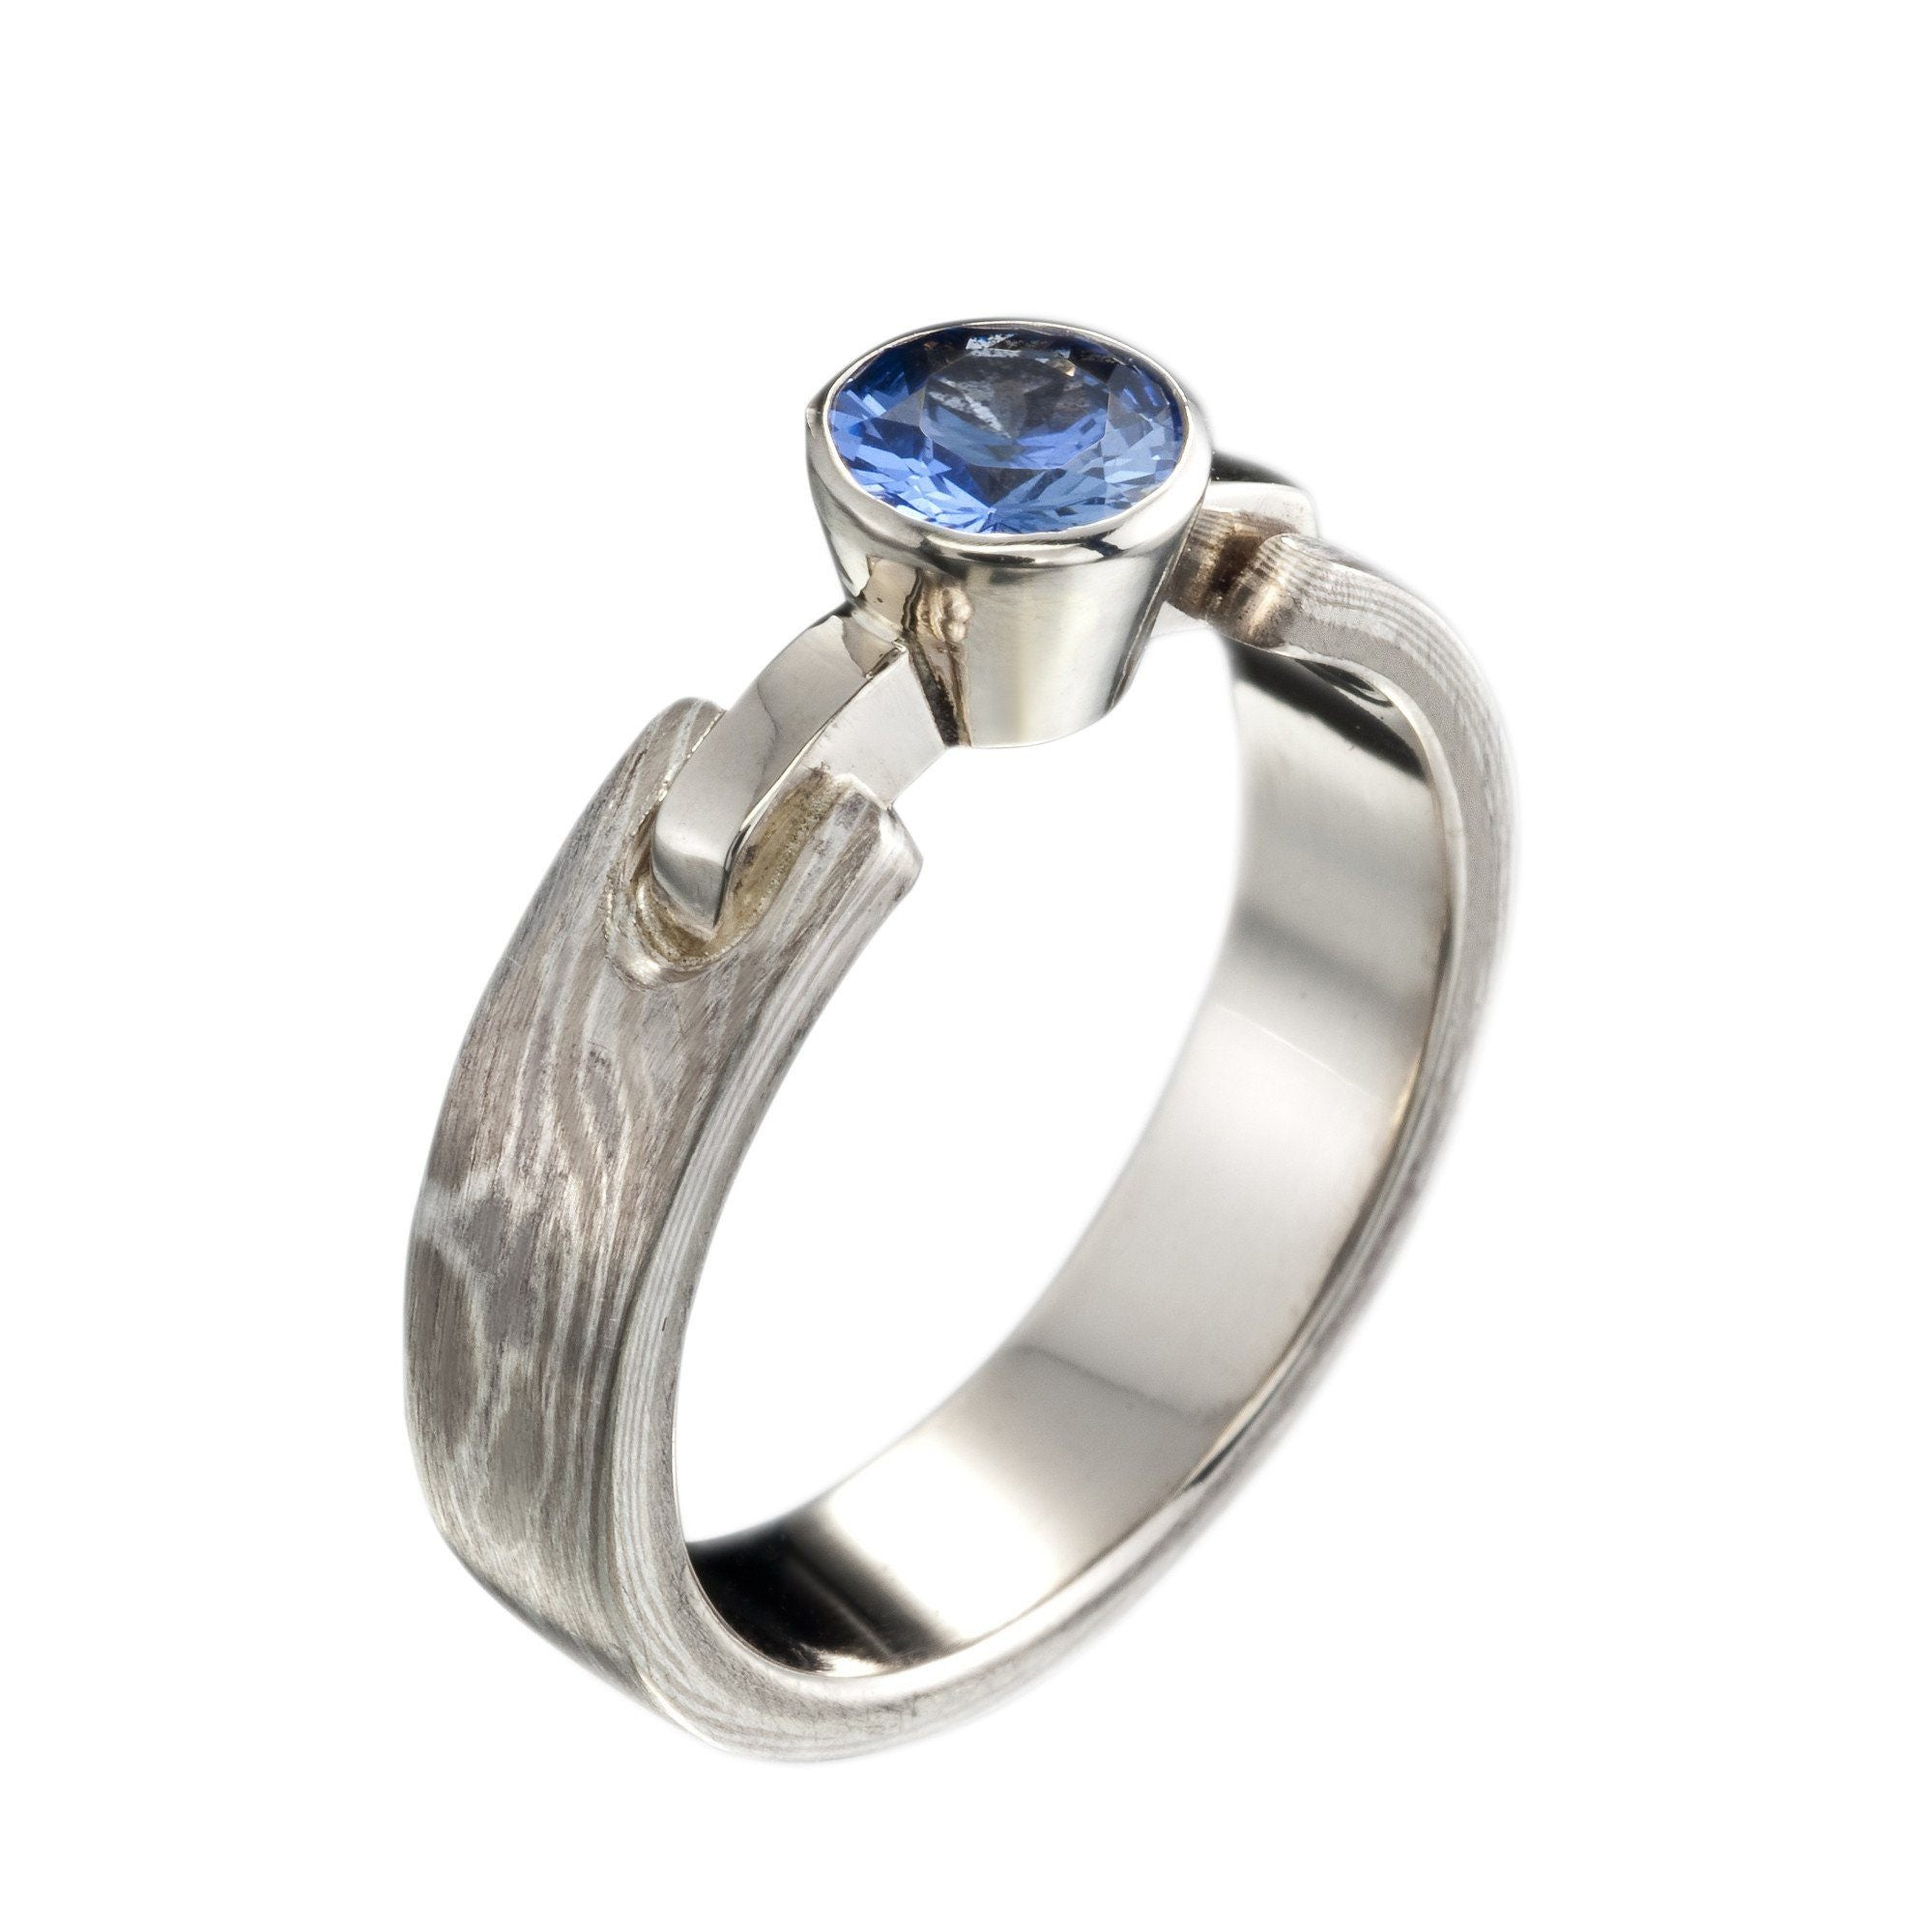 Silver/ white gold Woodgrain solitaire with sapphire